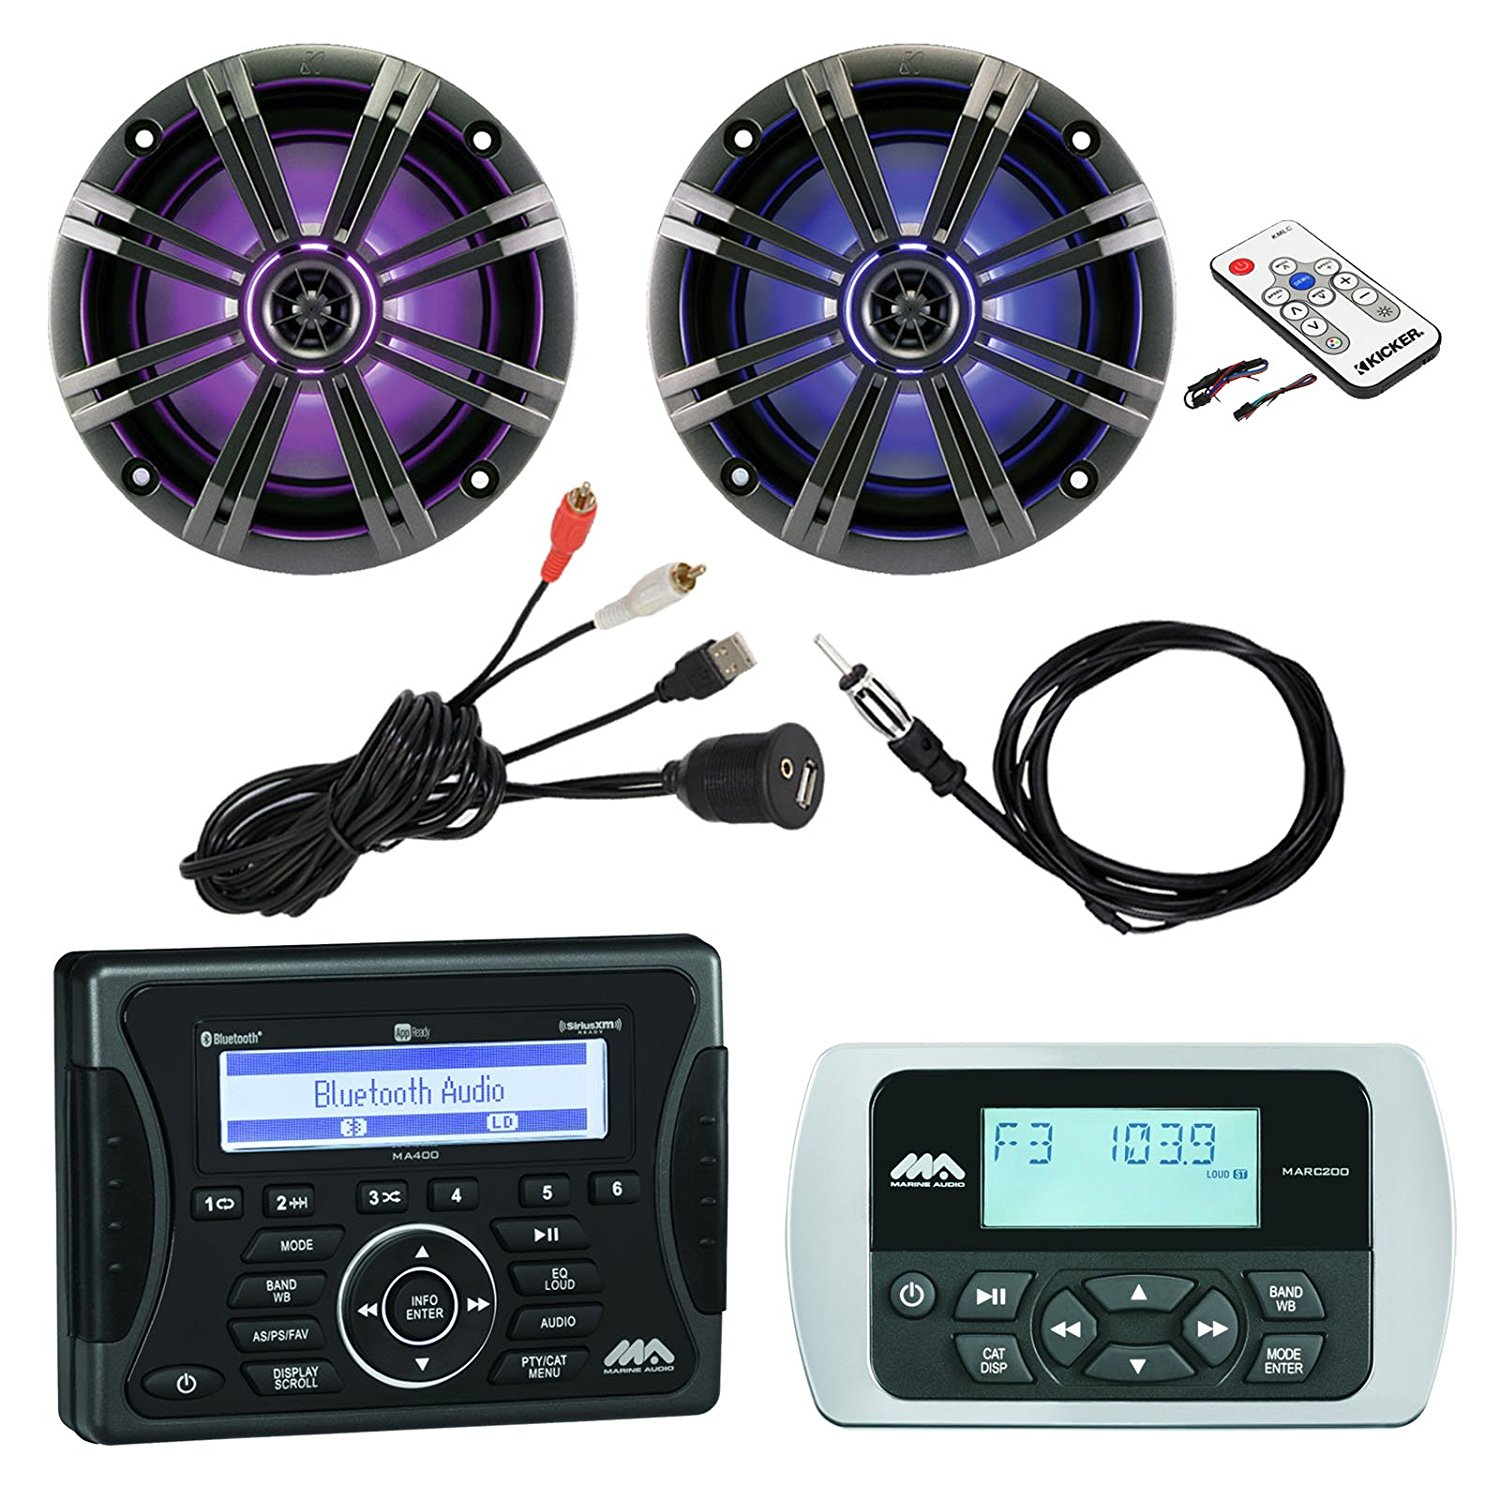 """Jensen Marine Audio Bluetooth AUX USB SiriusXM-Ready Receiver, Wired Remote, 2x 8"""" Marine LED Coaxial Speakers w/ Grilles, Braided Cable Antenna, Kicker LED Light Remote Controller, USB Mount"""